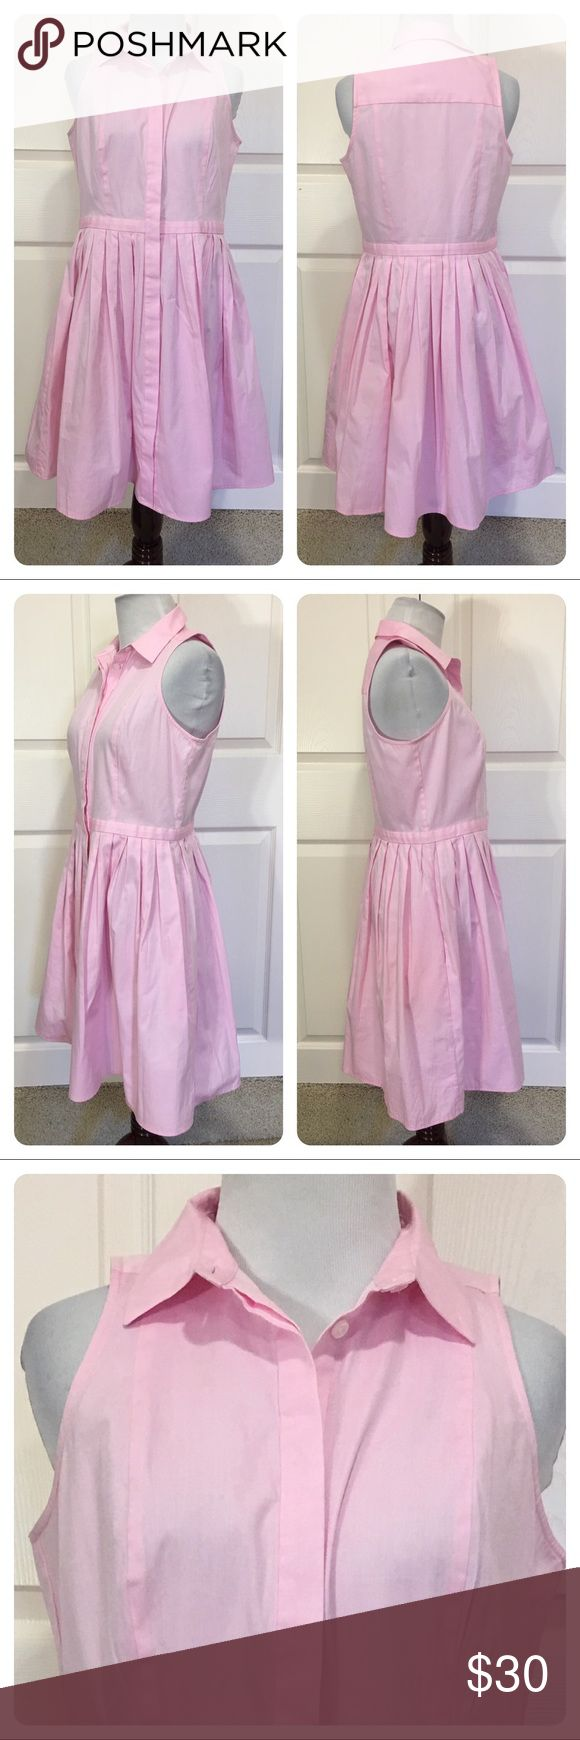 Ann Taylor pink shirt dress Love the pink!  Ann Taylor Petite shirt dress. Collar top and button front. Pleated skirt. Great pockets.  Perfect with sandals or wedges! Ann Taylor Dresses